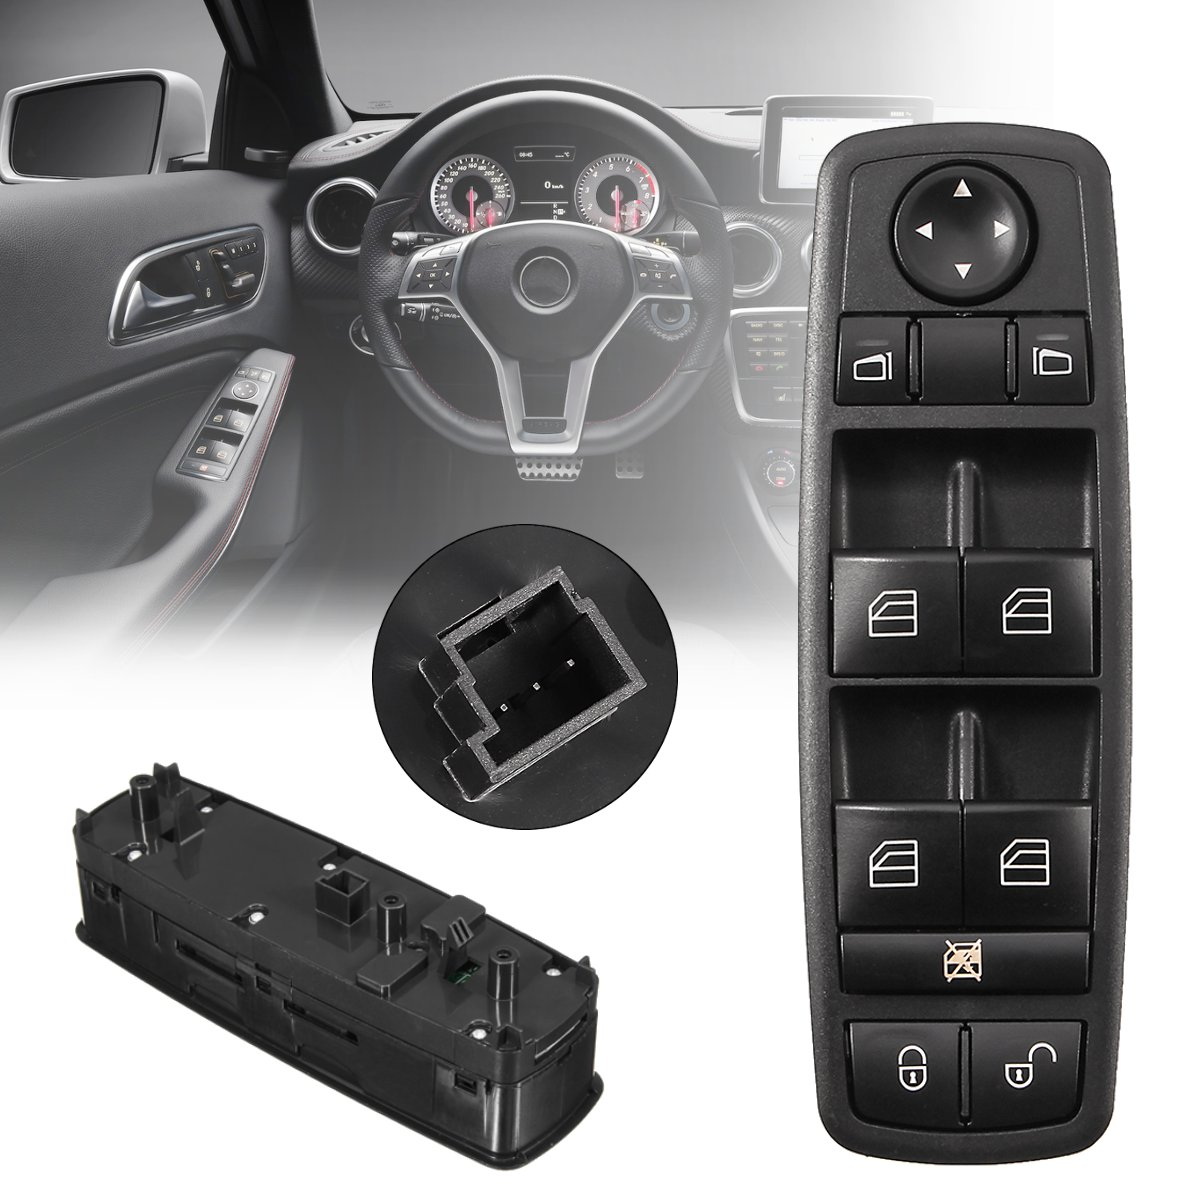 for Benz B-Class W245 2005-2011 A-Class W169 2004-2012 Black Electric Power Car Power Window Control Master Switch <font><b>A1698206610</b></font> image